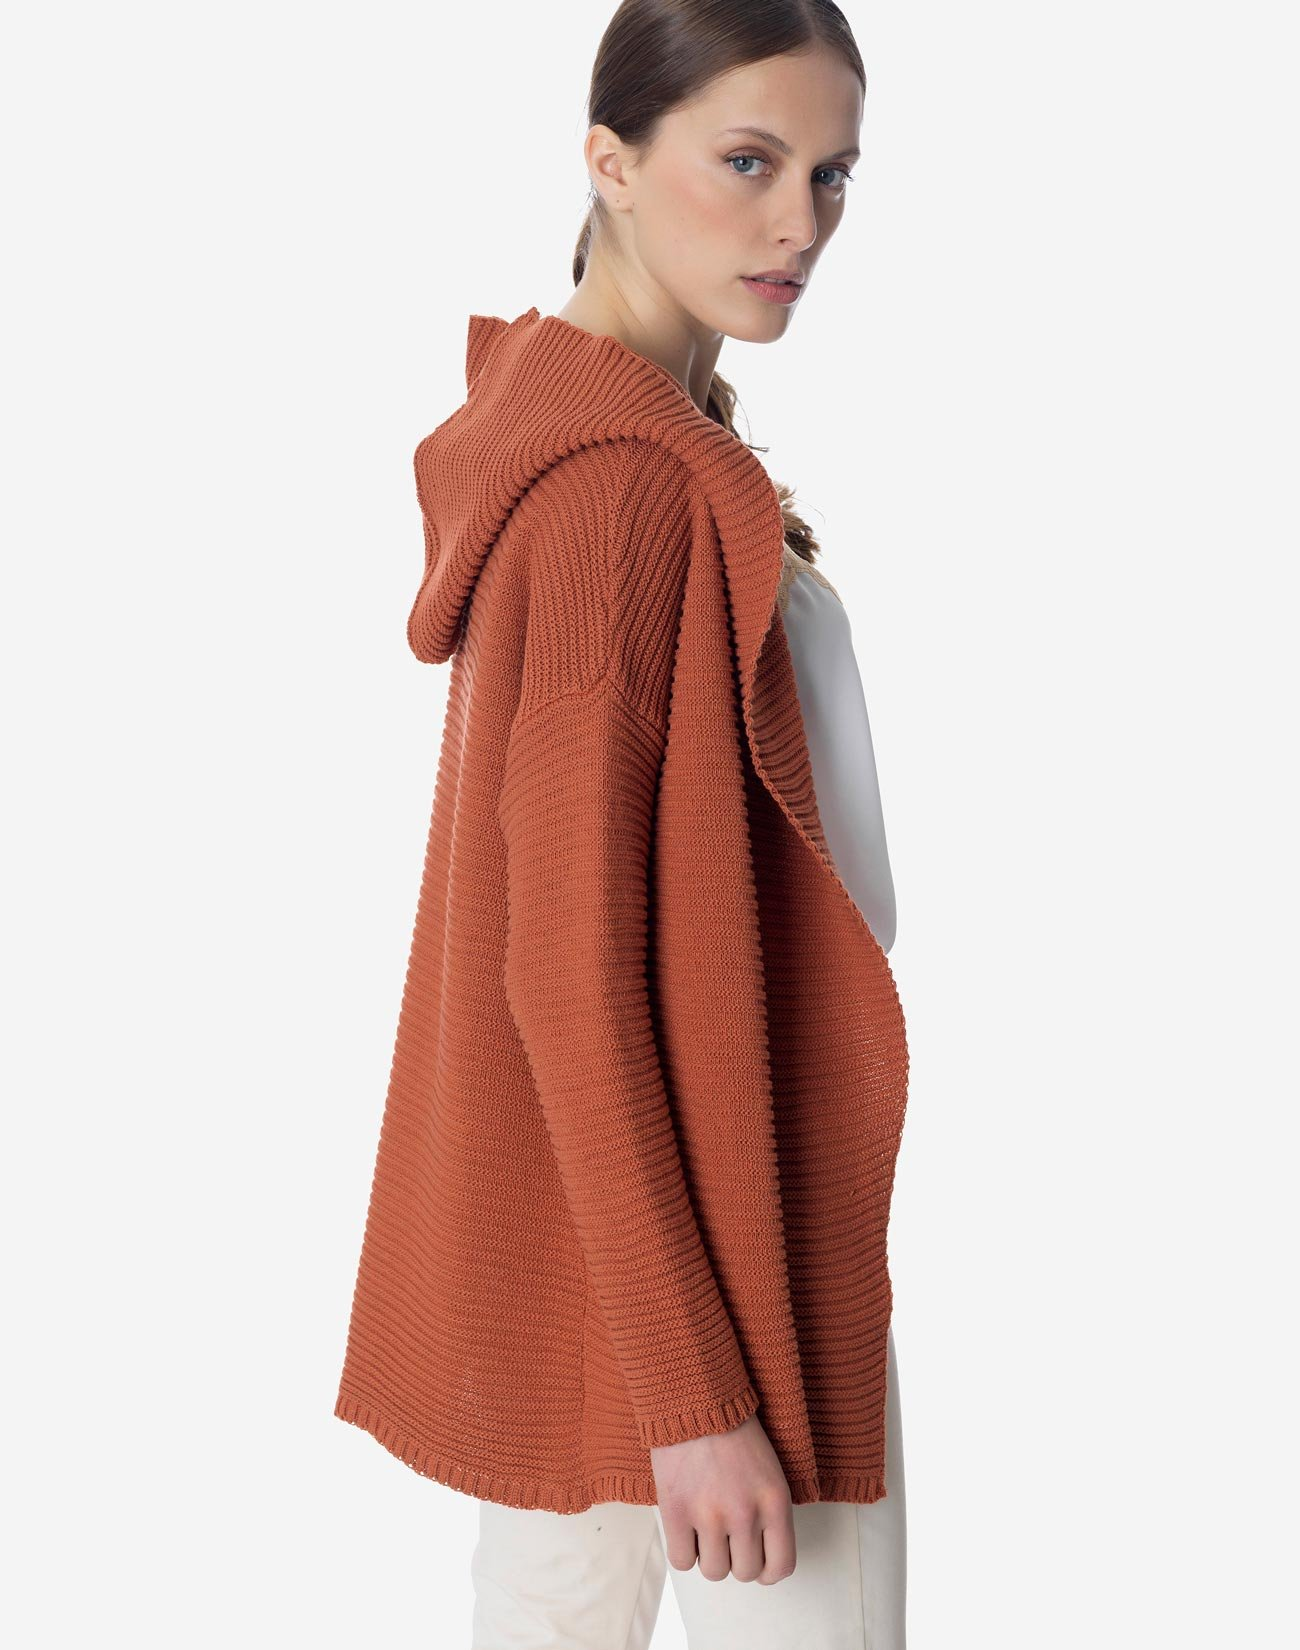 Knit cardigan with hood